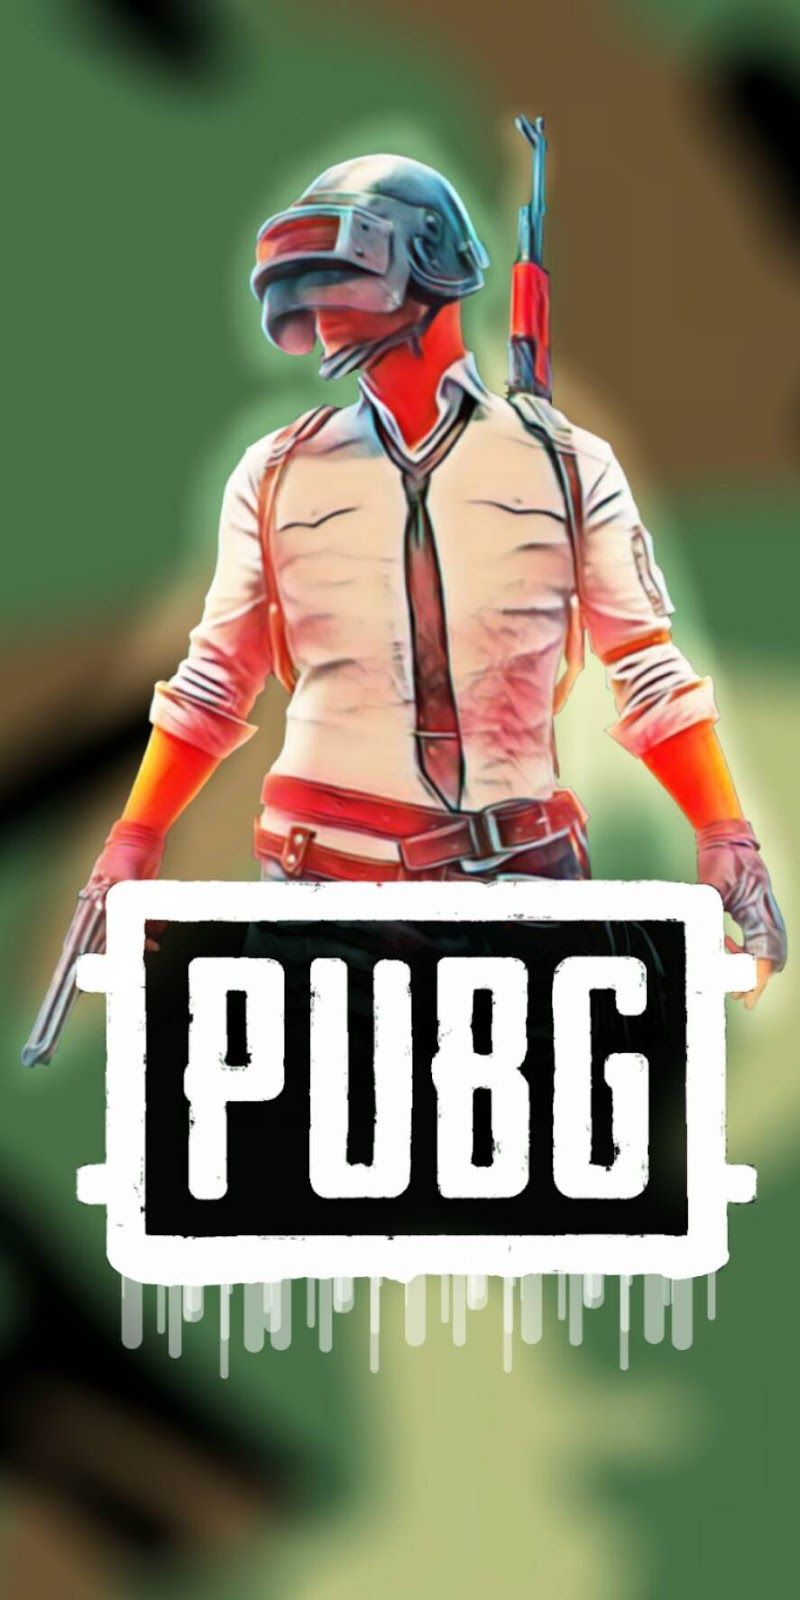 Pubg Wallpaper Mobile Wallpaper Android Game Wallpaper Iphone Android Phone Wallpaper